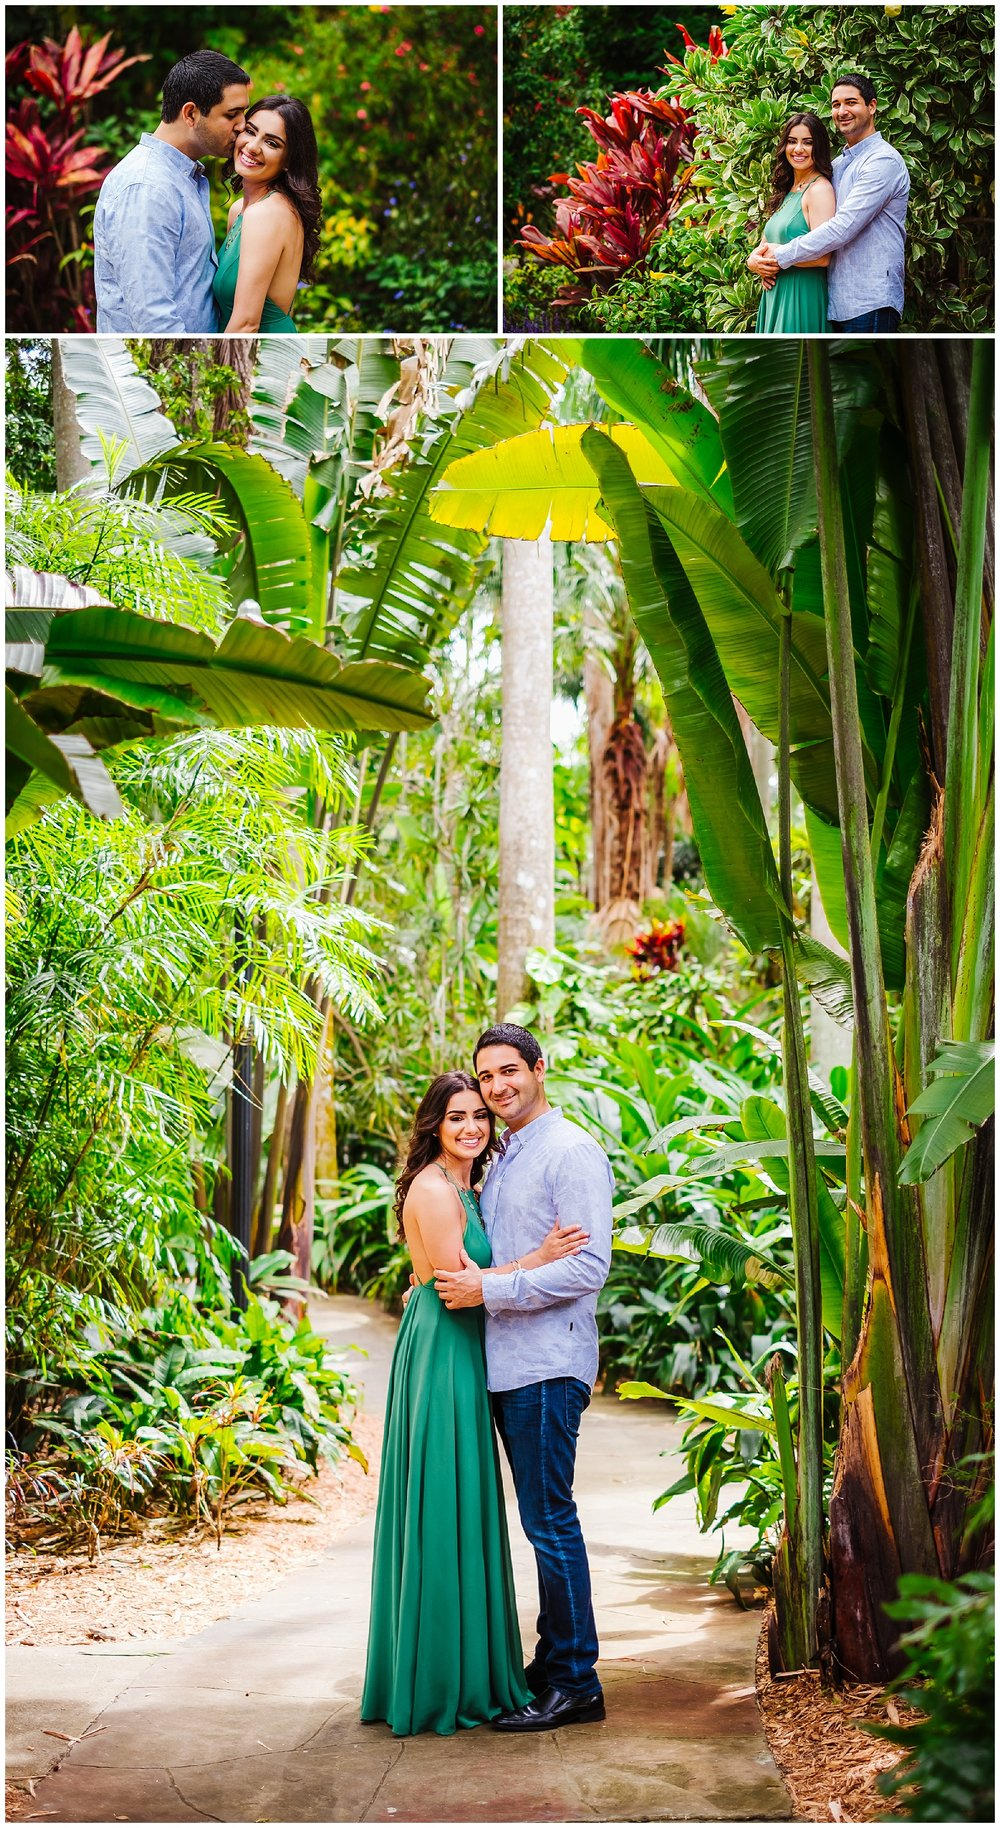 sunken-gardens-engagement-session-photos-teal-flamingos_0004.jpg